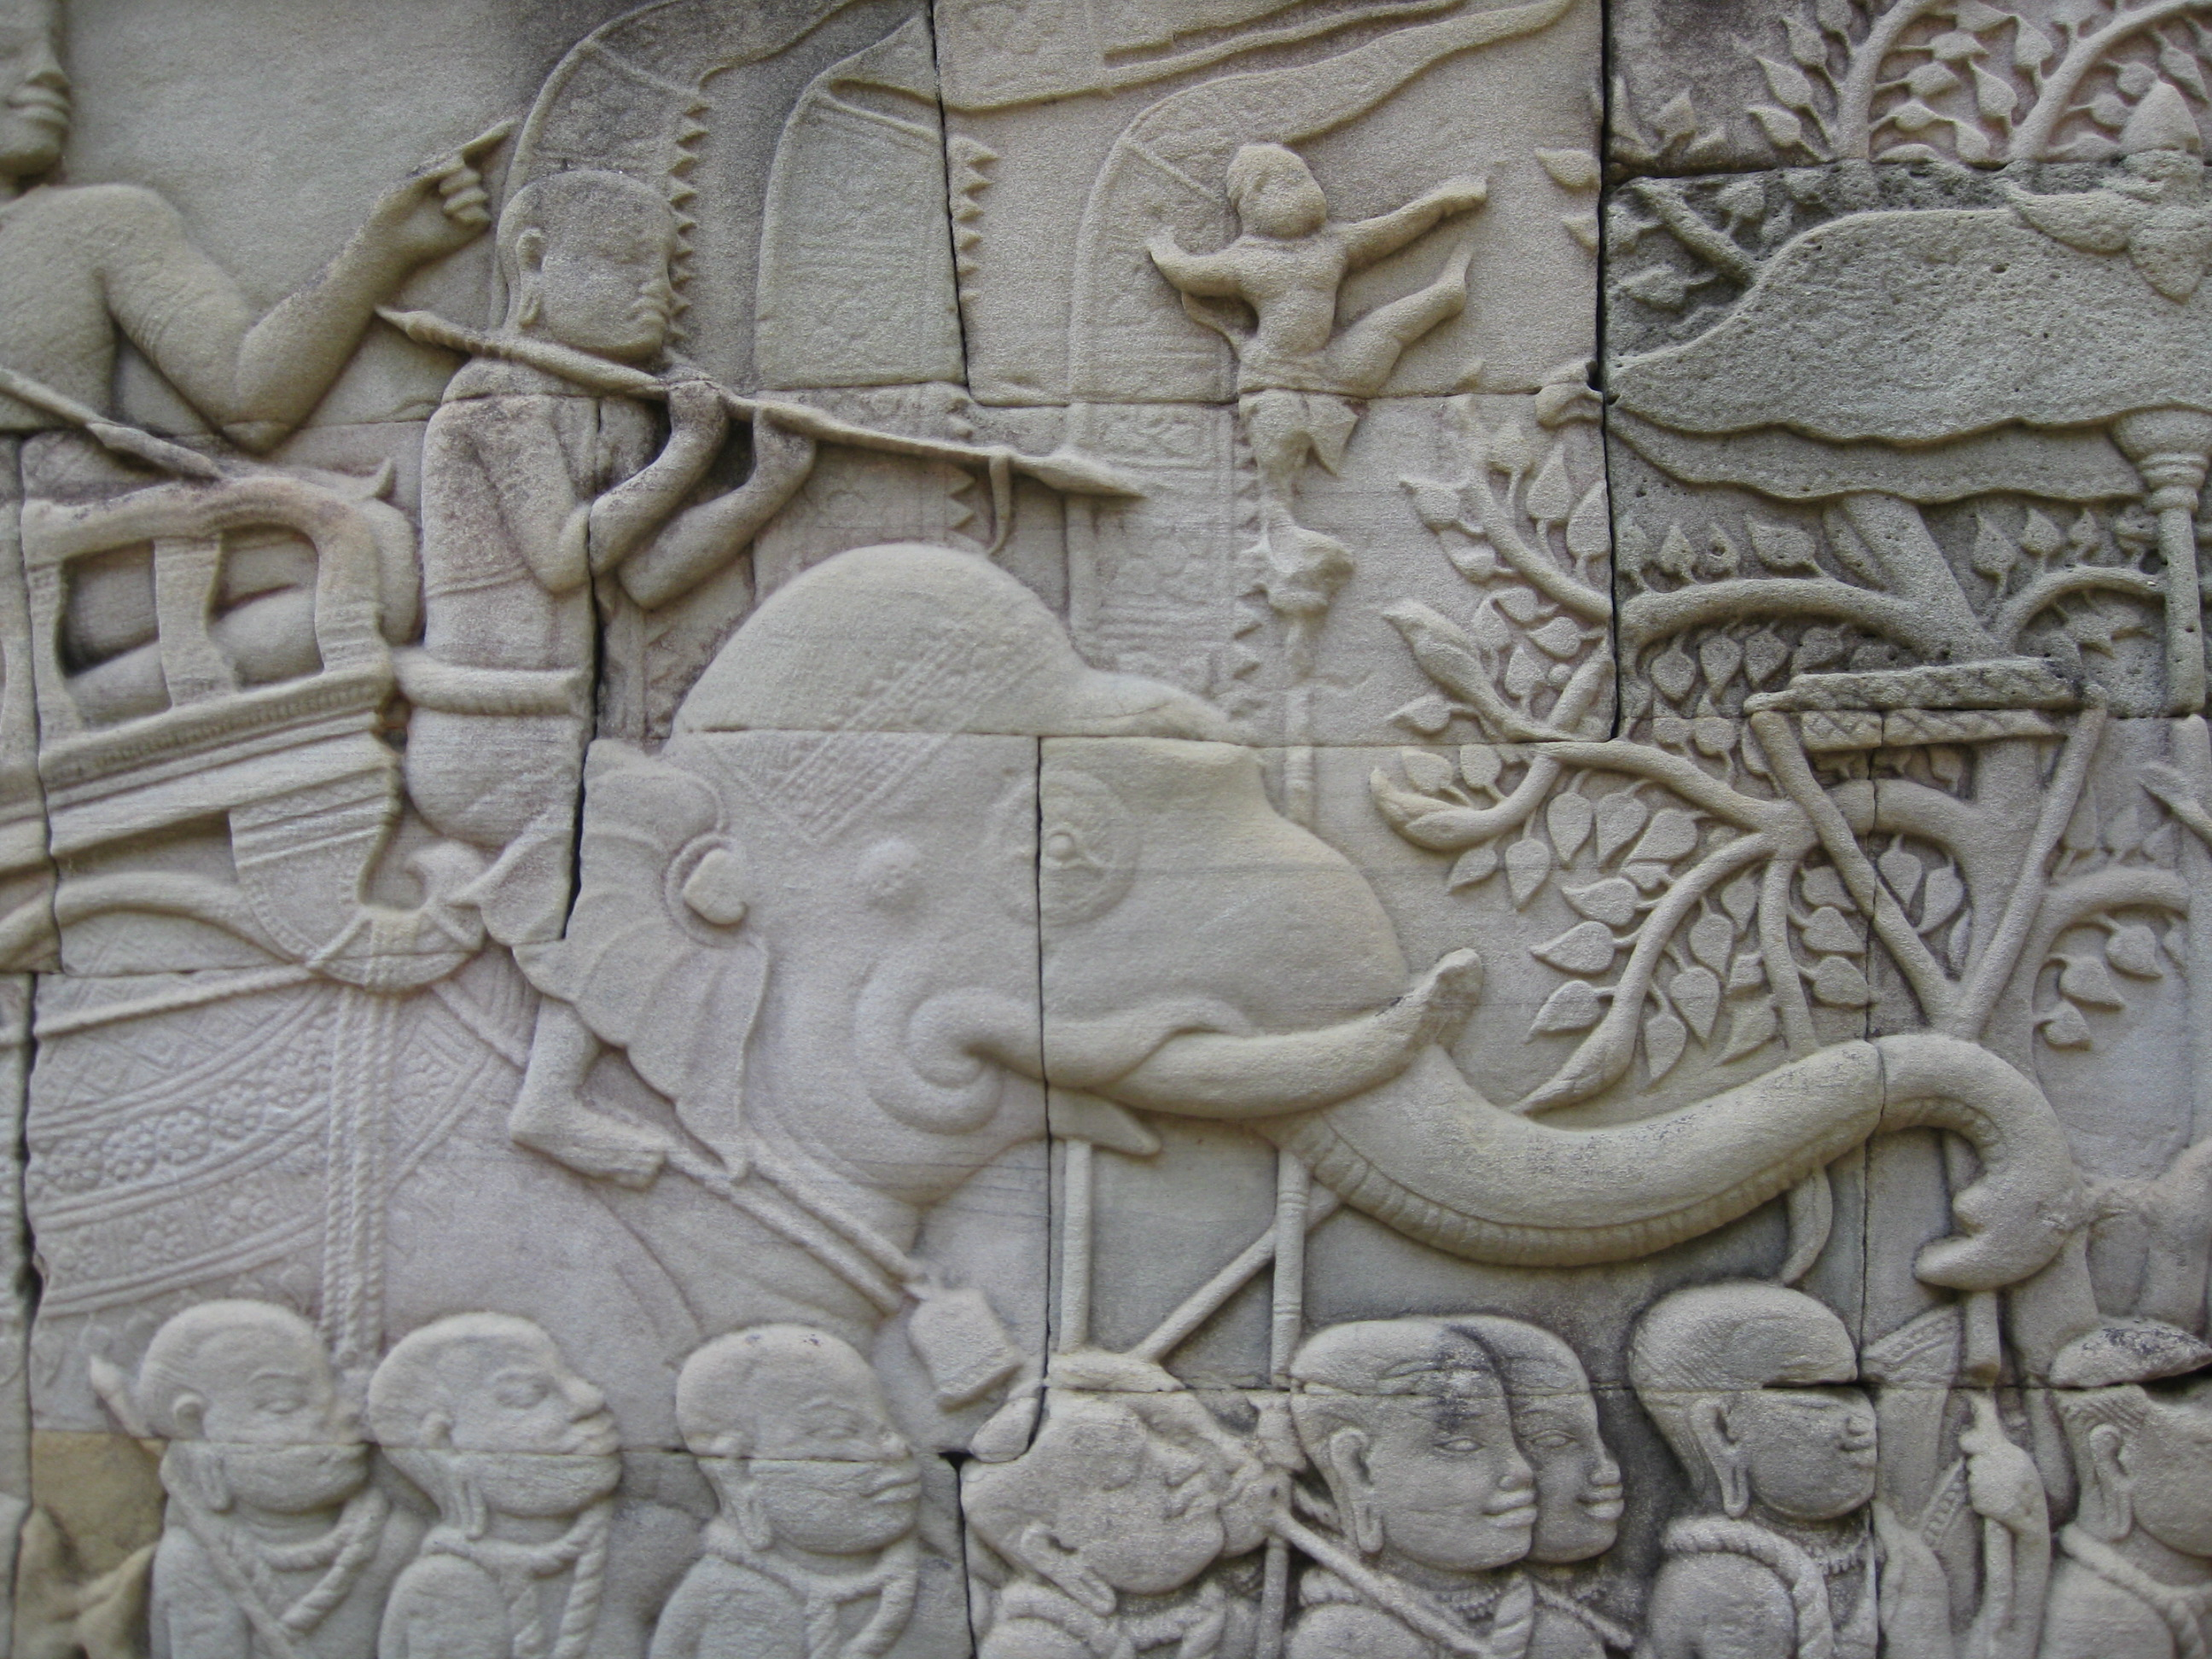 Carving at angkor wat quipidity